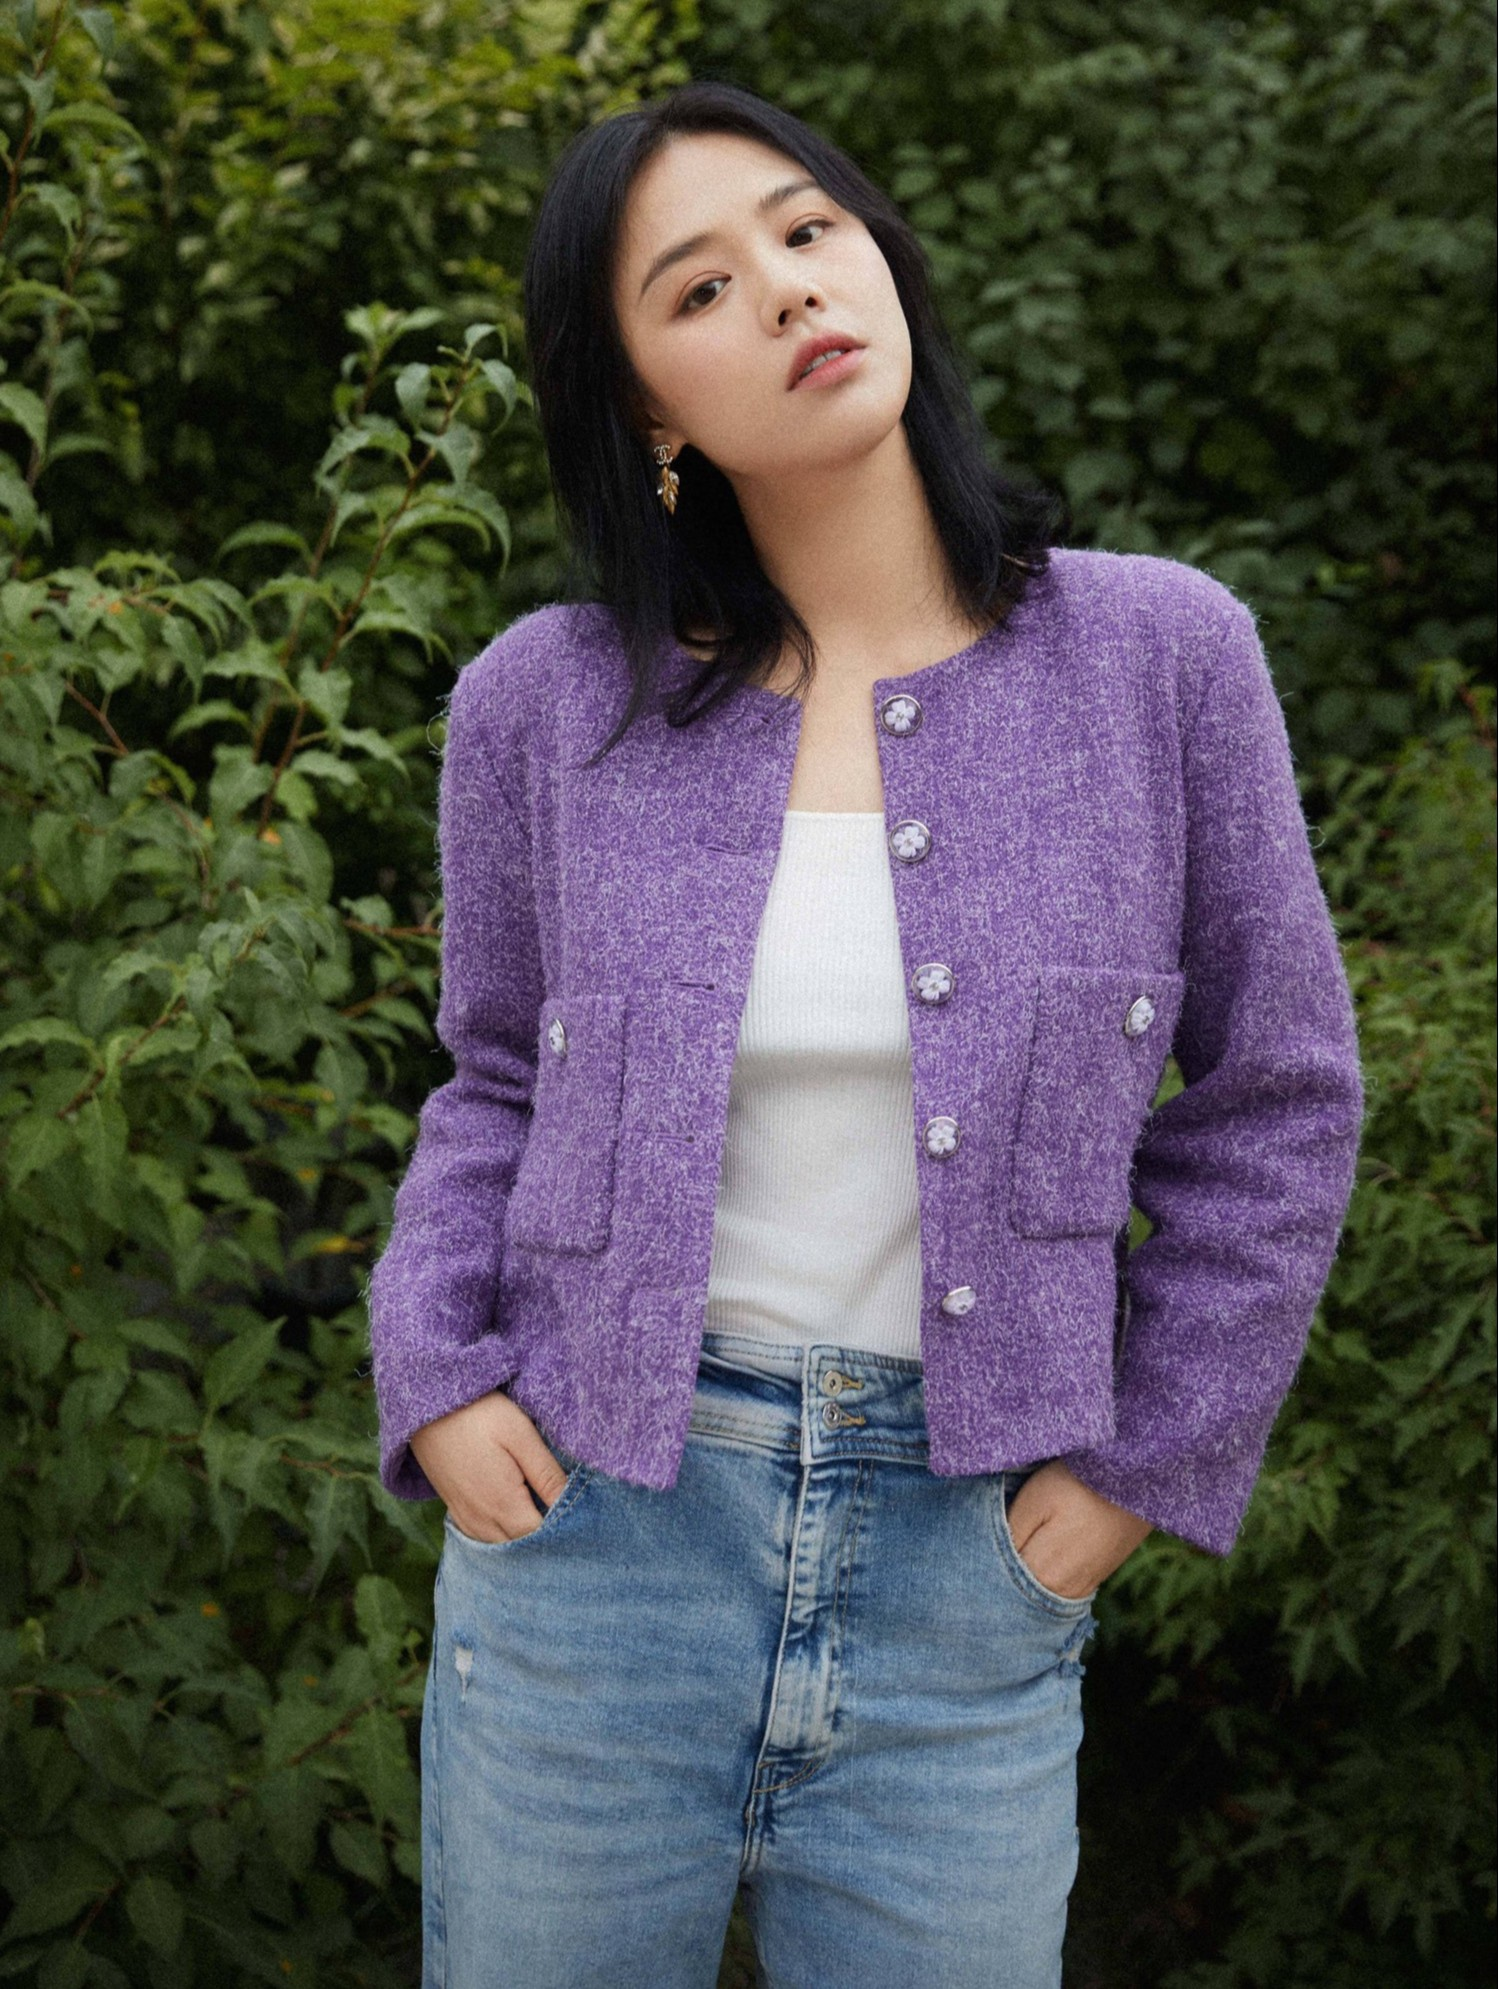 China's First Hound - Zhuo Wei revealed the list of the most 'clean' female artists Cbiz 6